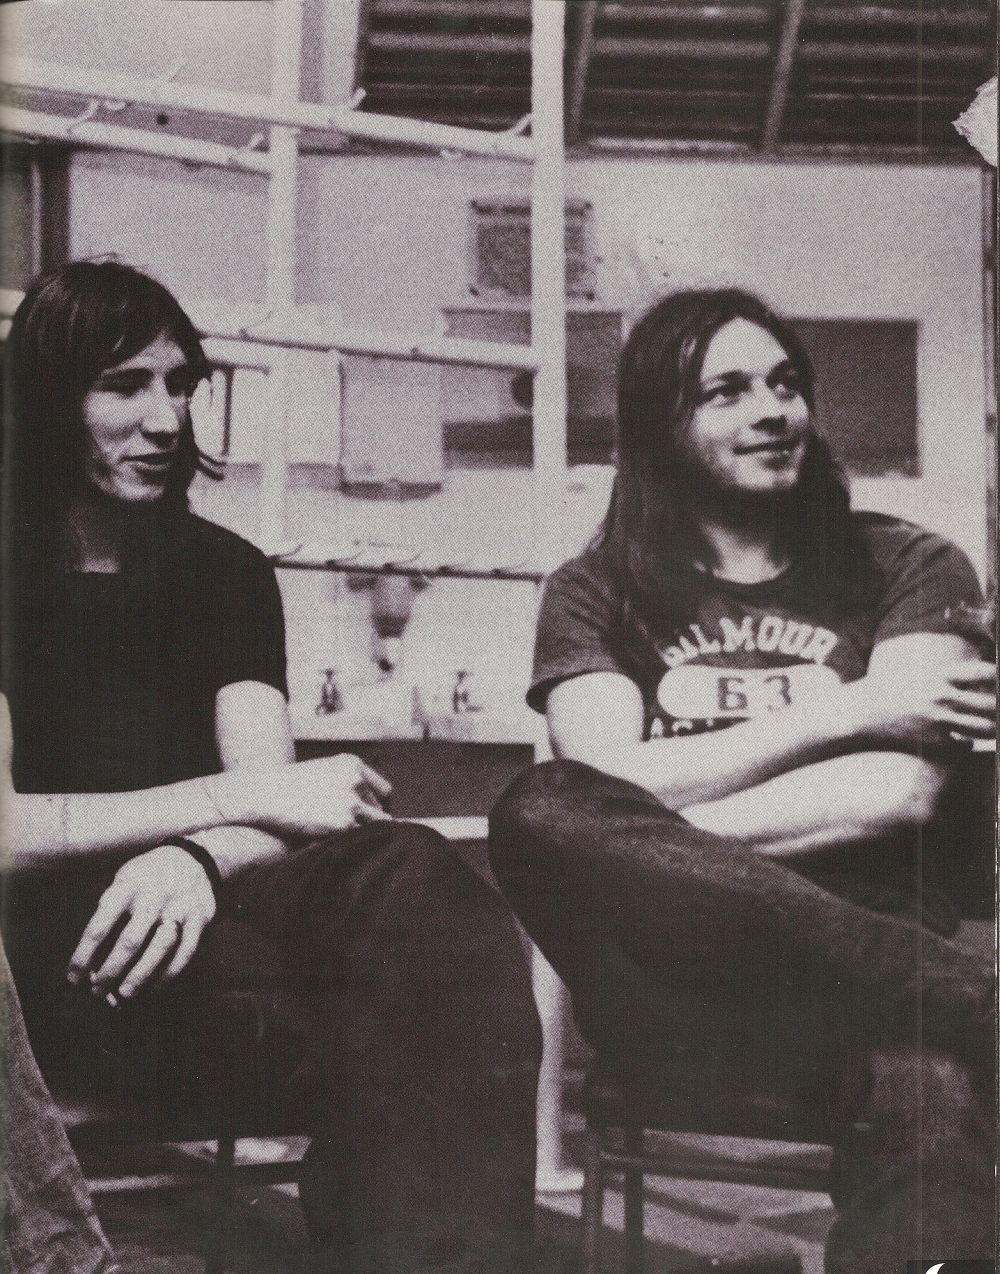 Roger Waters and David Gilmour. Once upon a time…